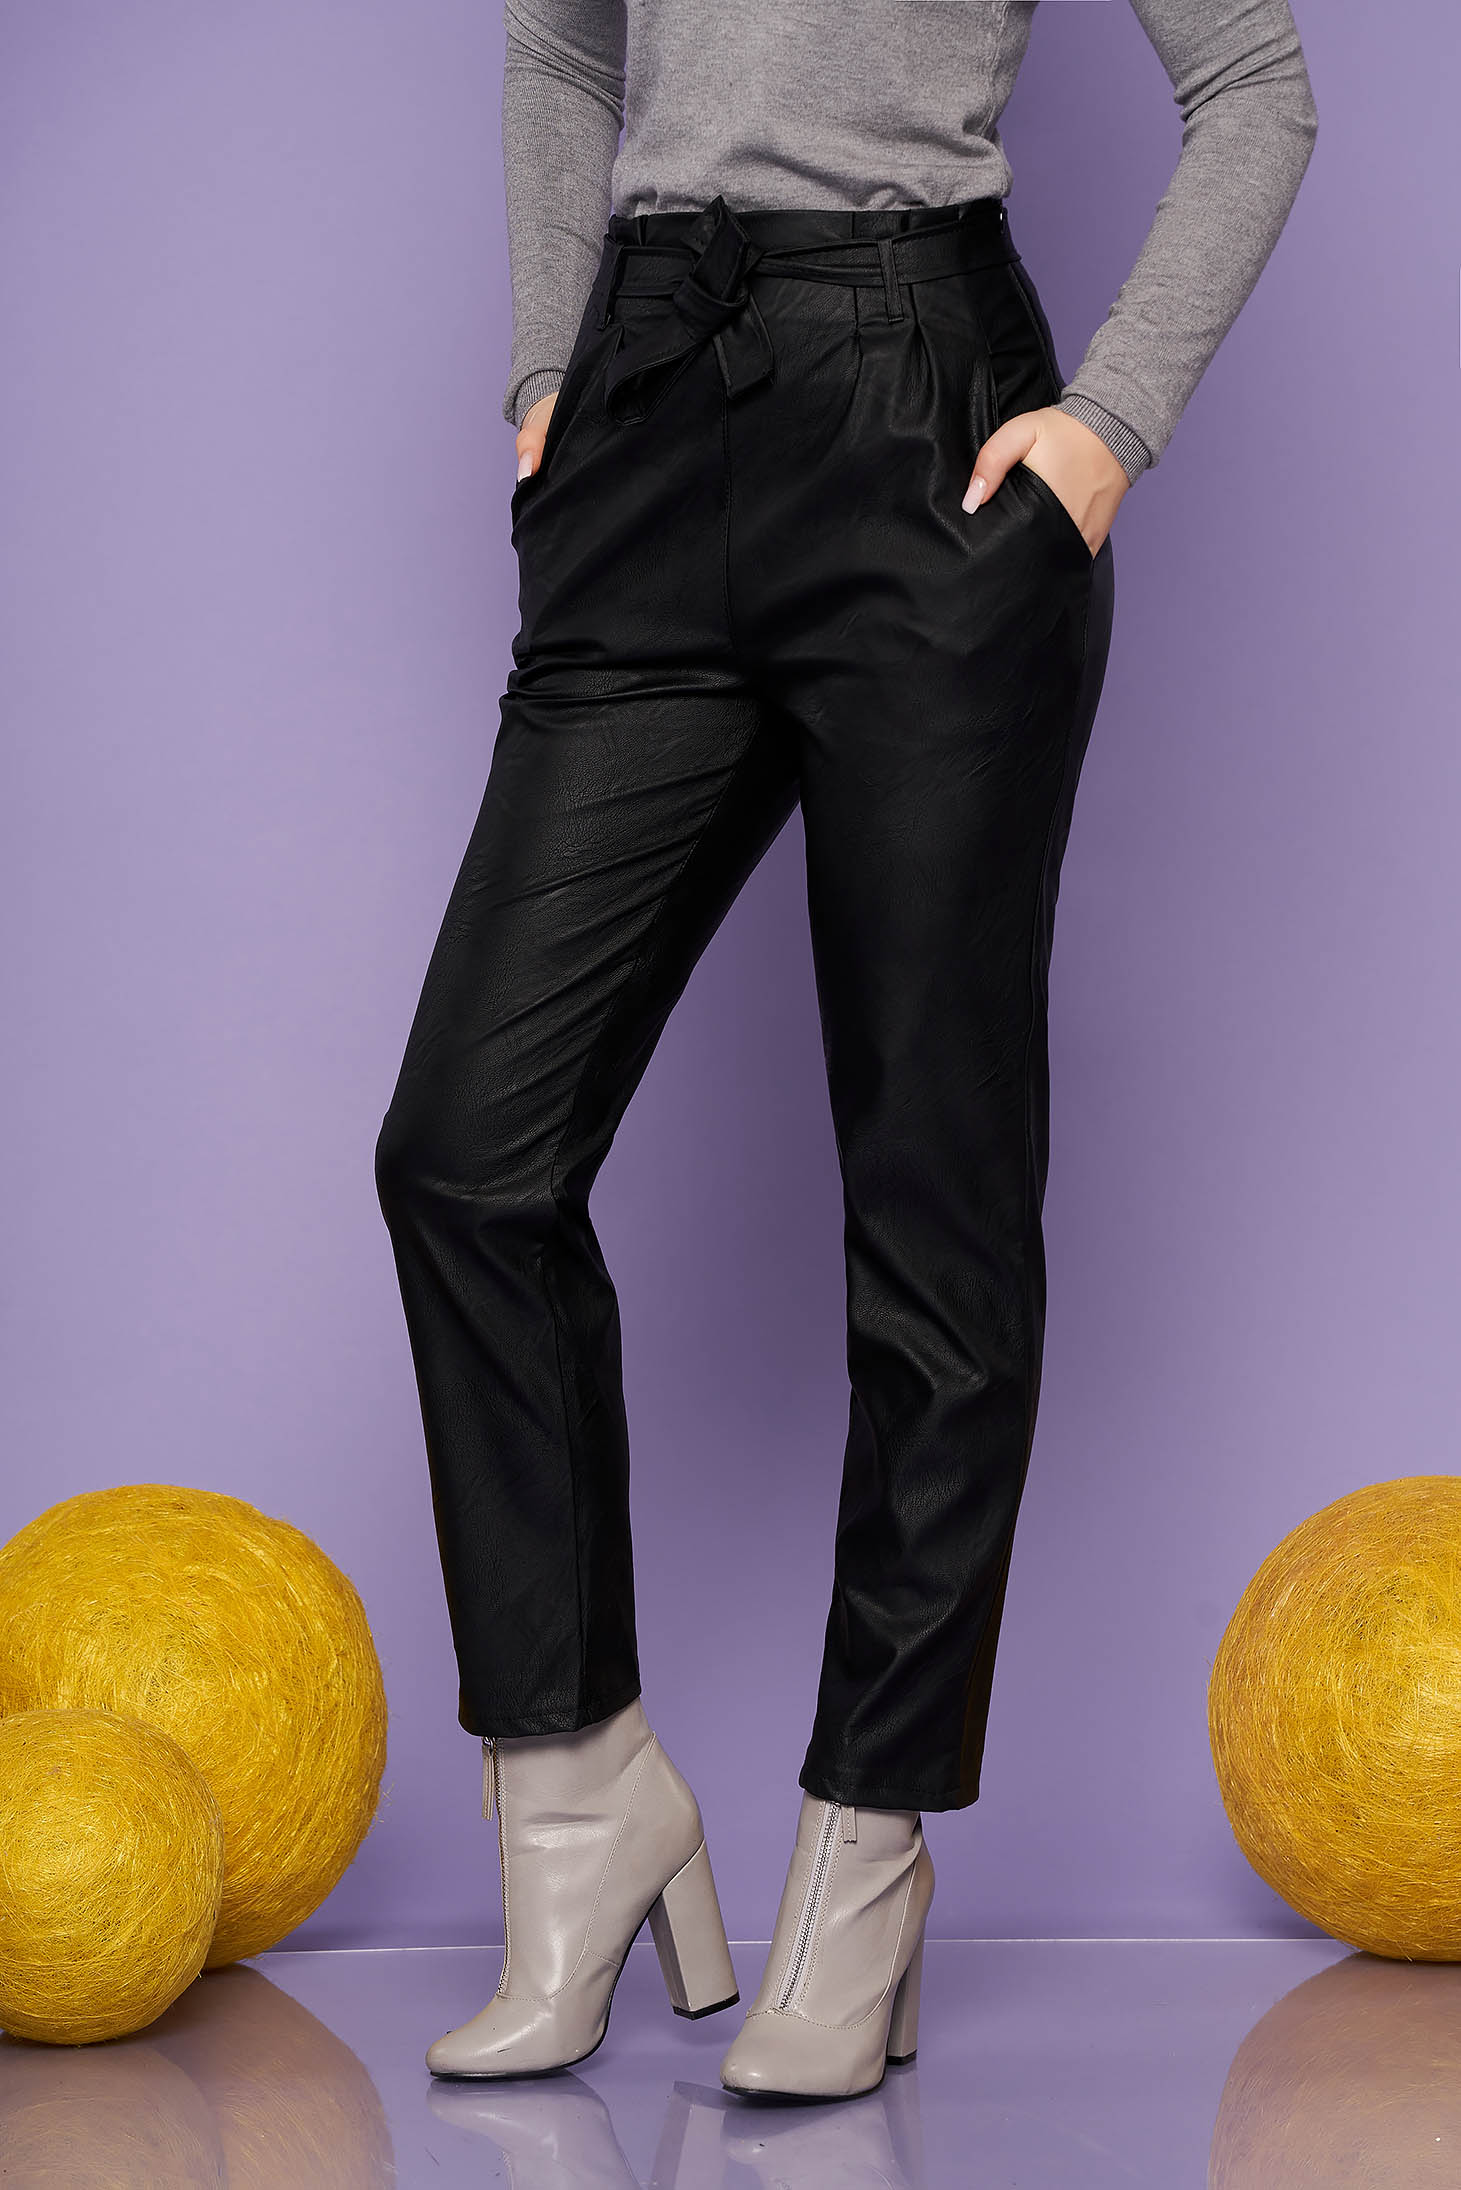 Trousers black casual from ecological leather conical high waisted accessorized with tied waistband with pockets